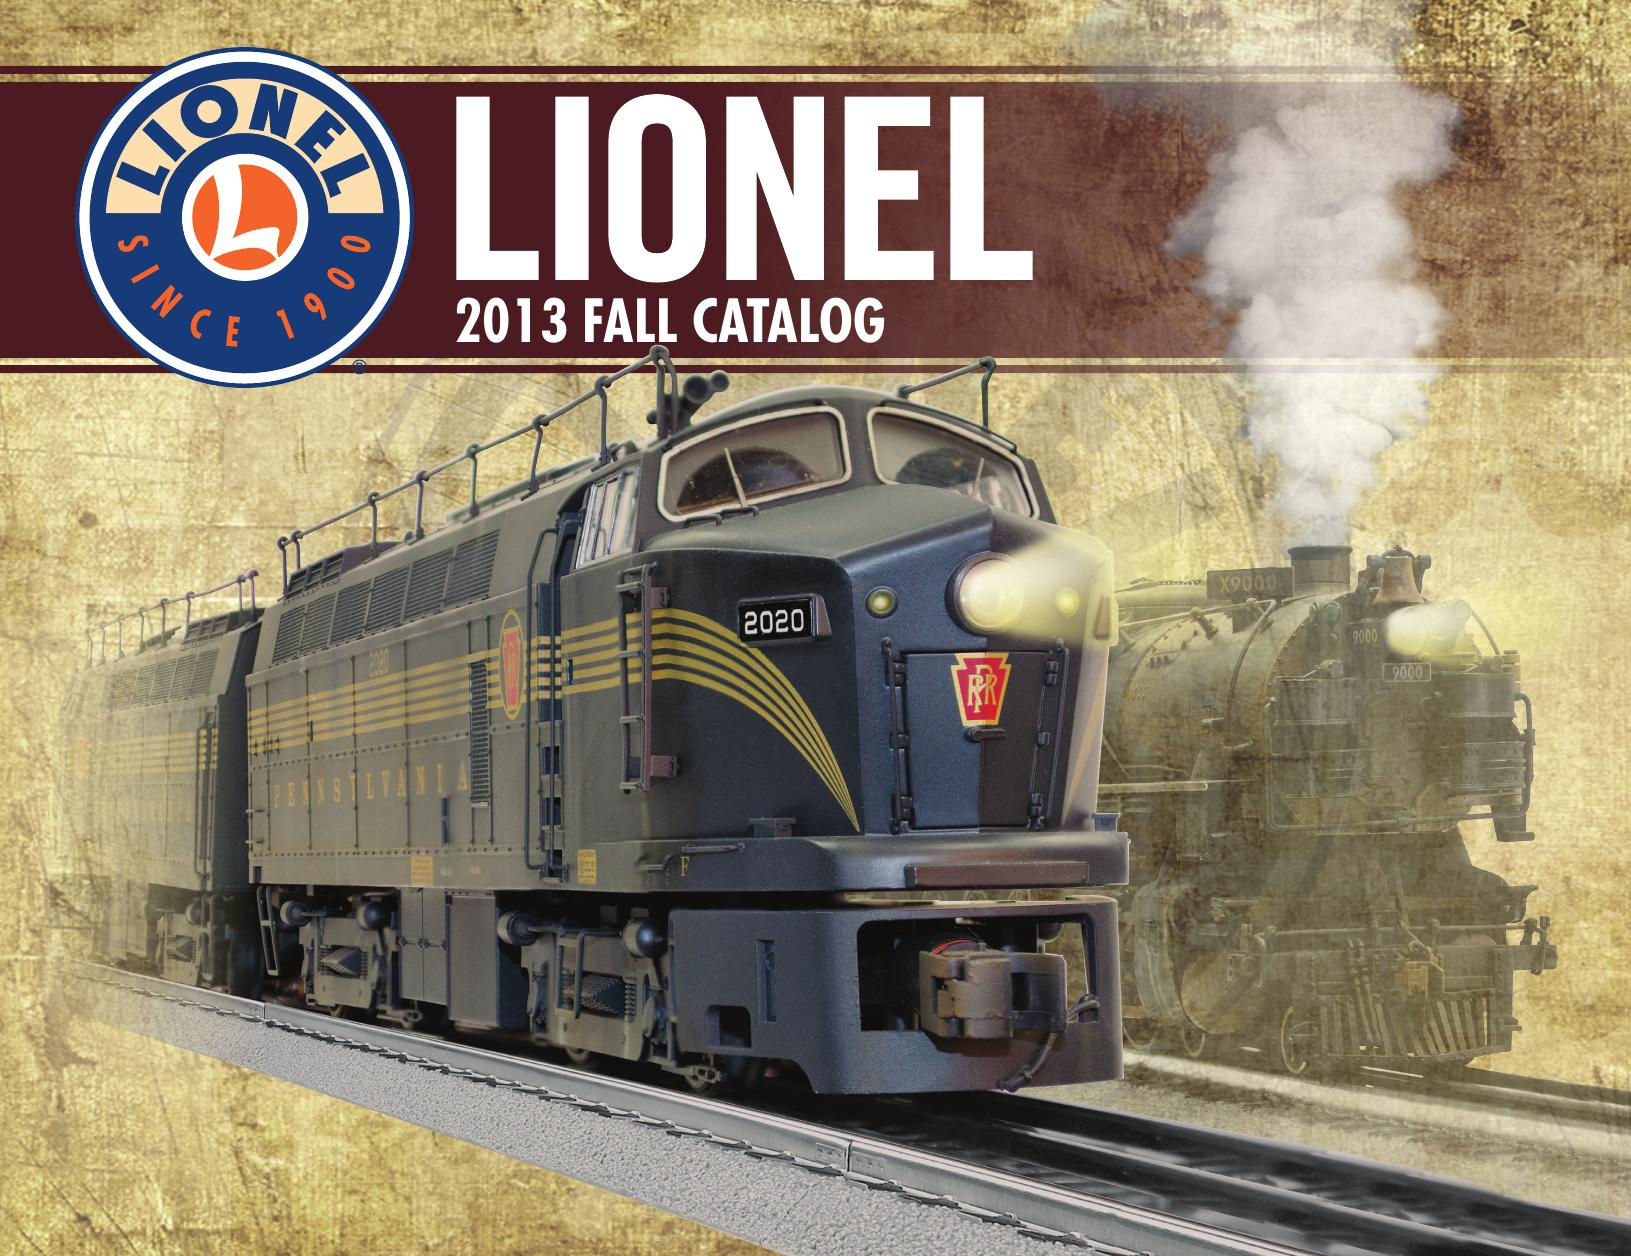 Lionel Catalogs - Fall 2013